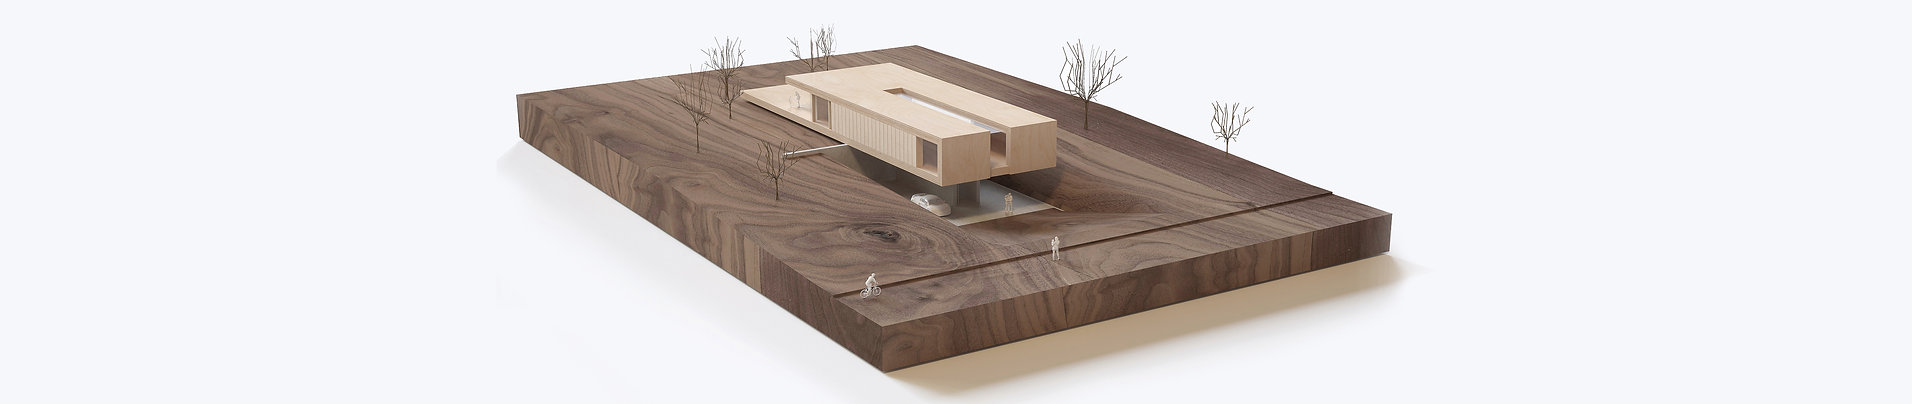 Architectural model private house